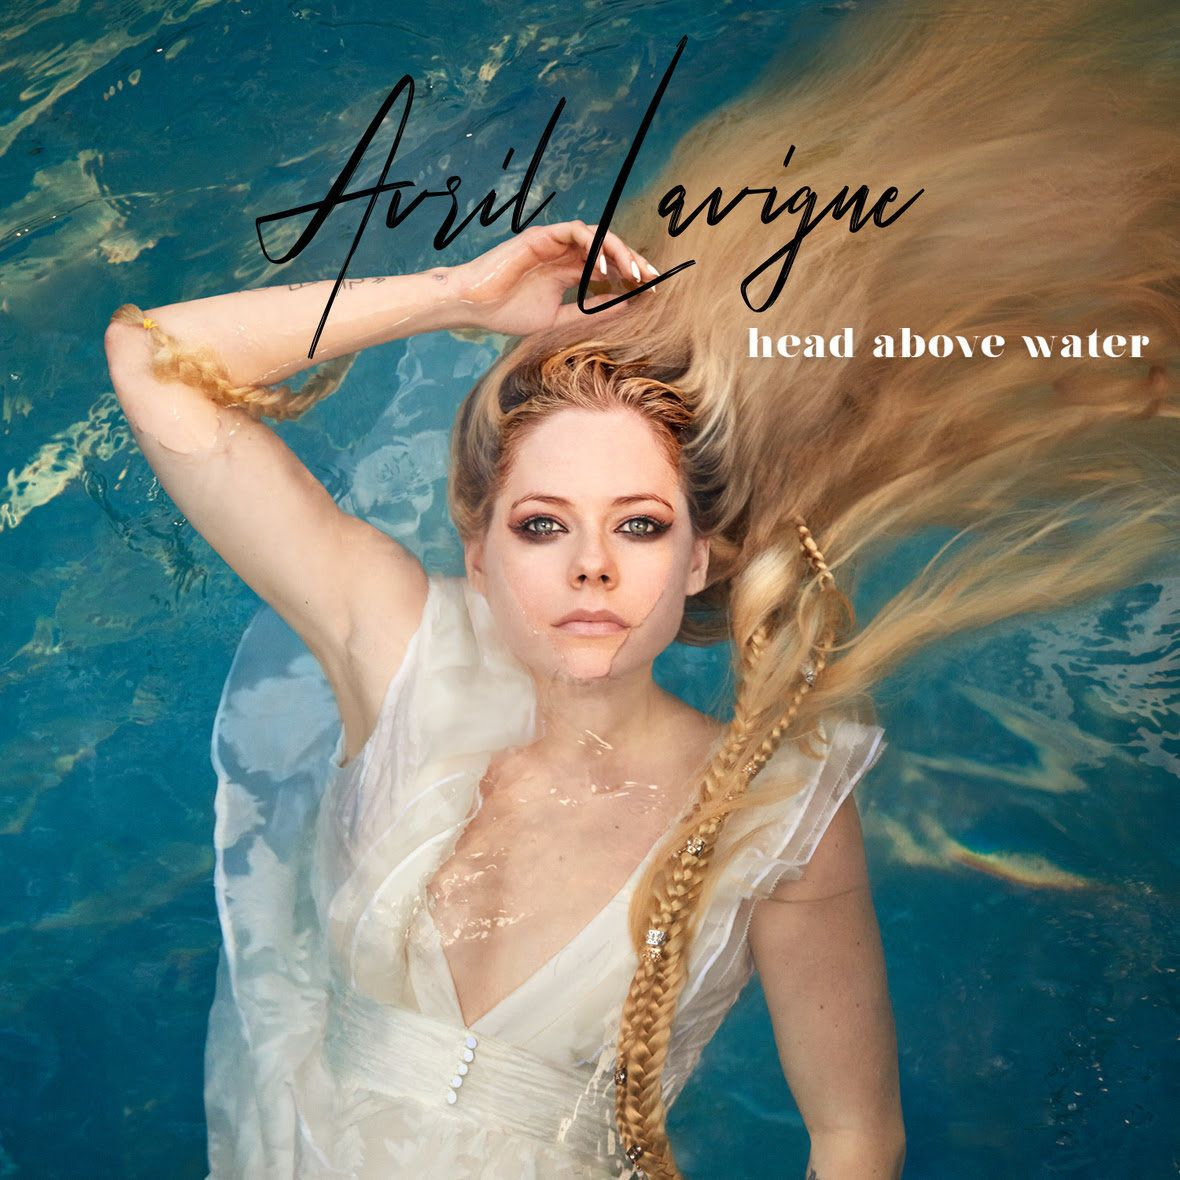 H επιστροφή της Avril Lavigne: «Head Above